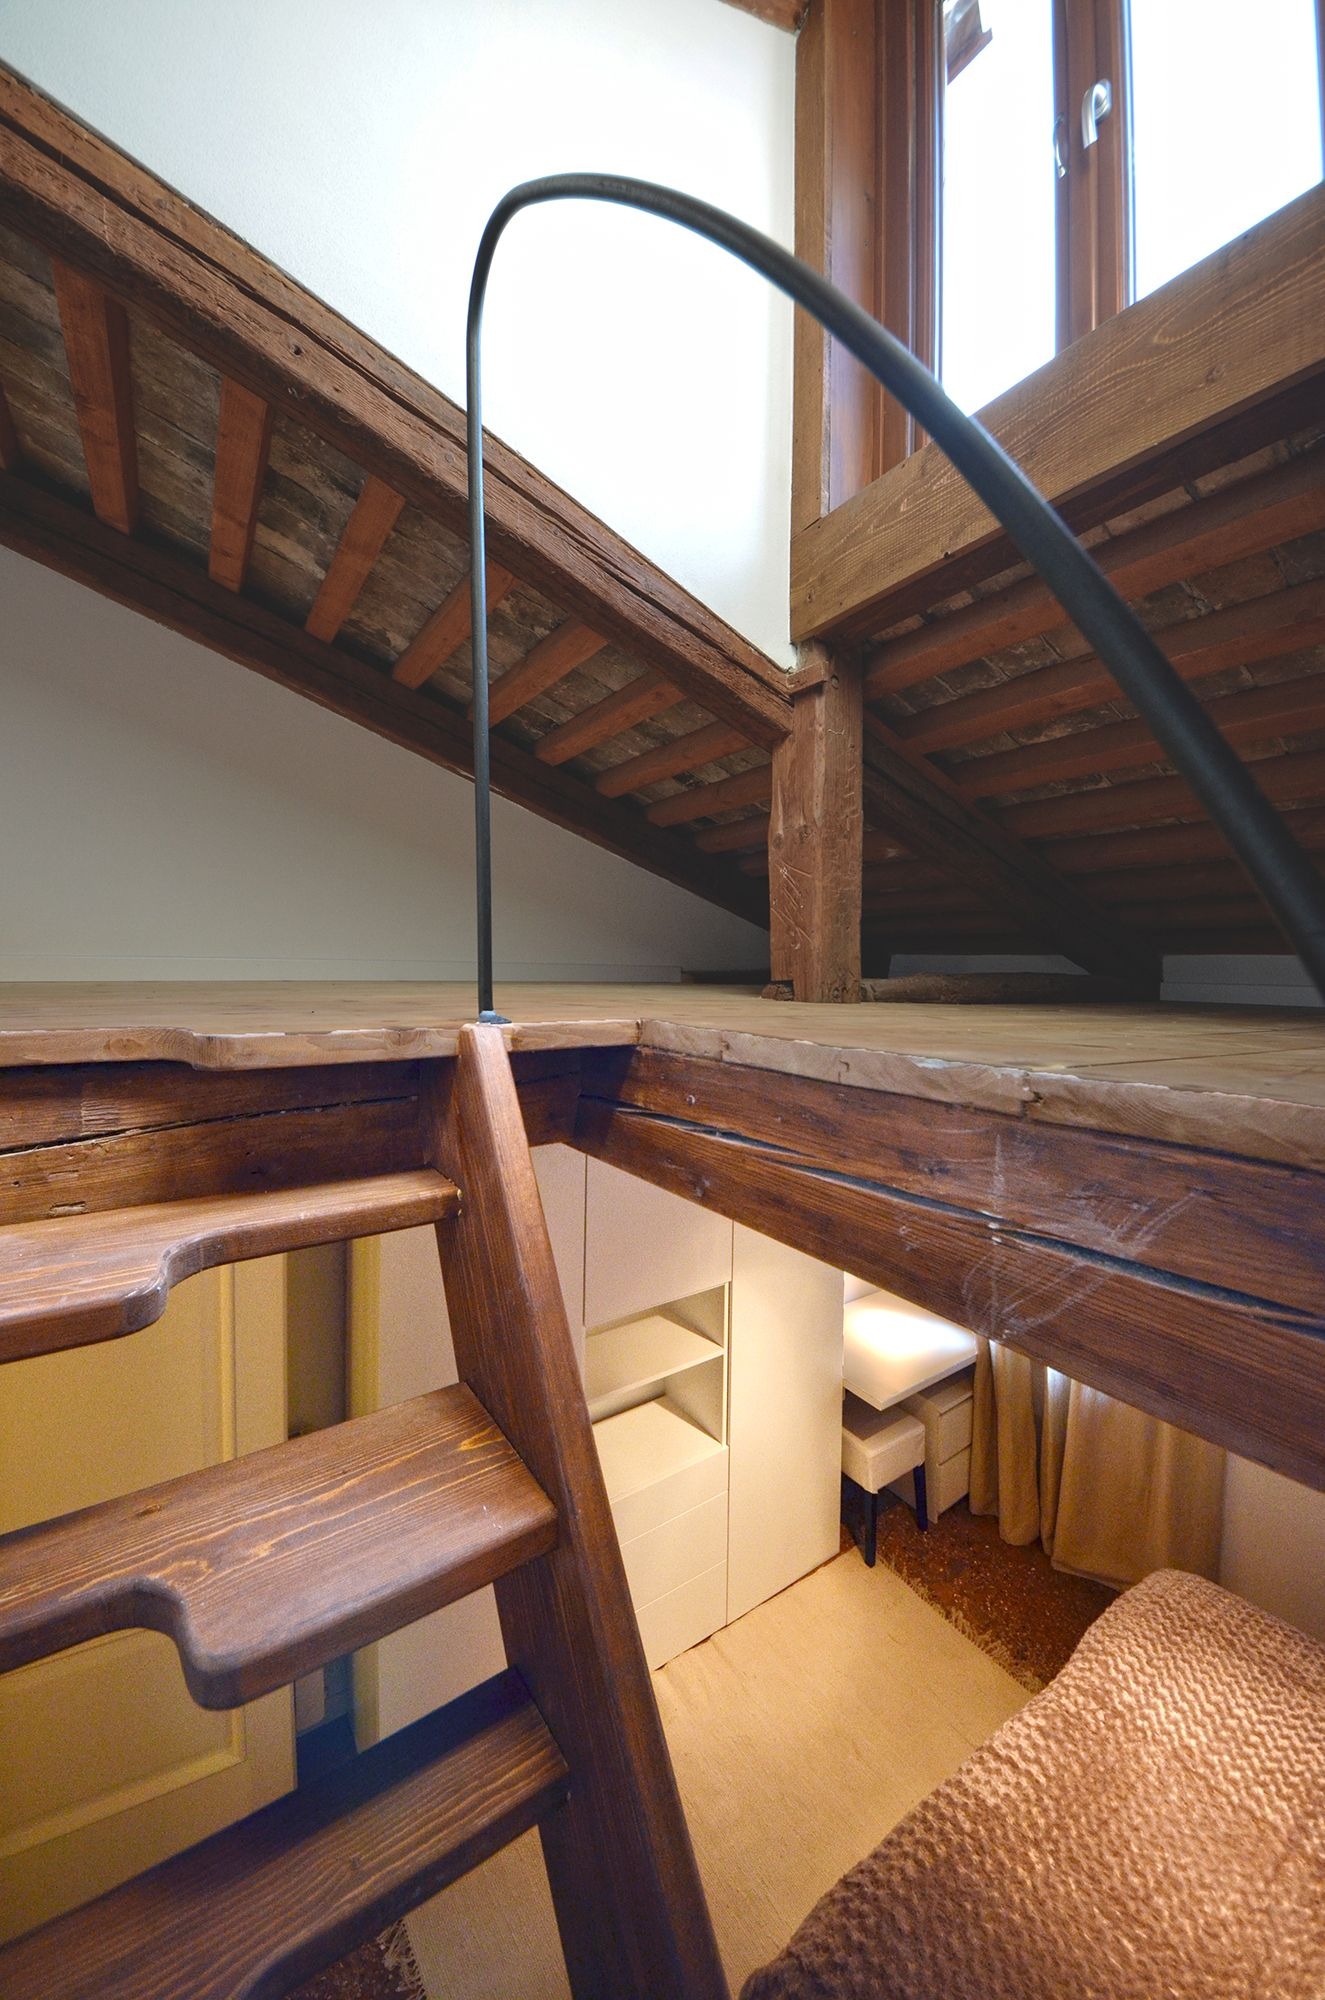 the attic is used as storage room